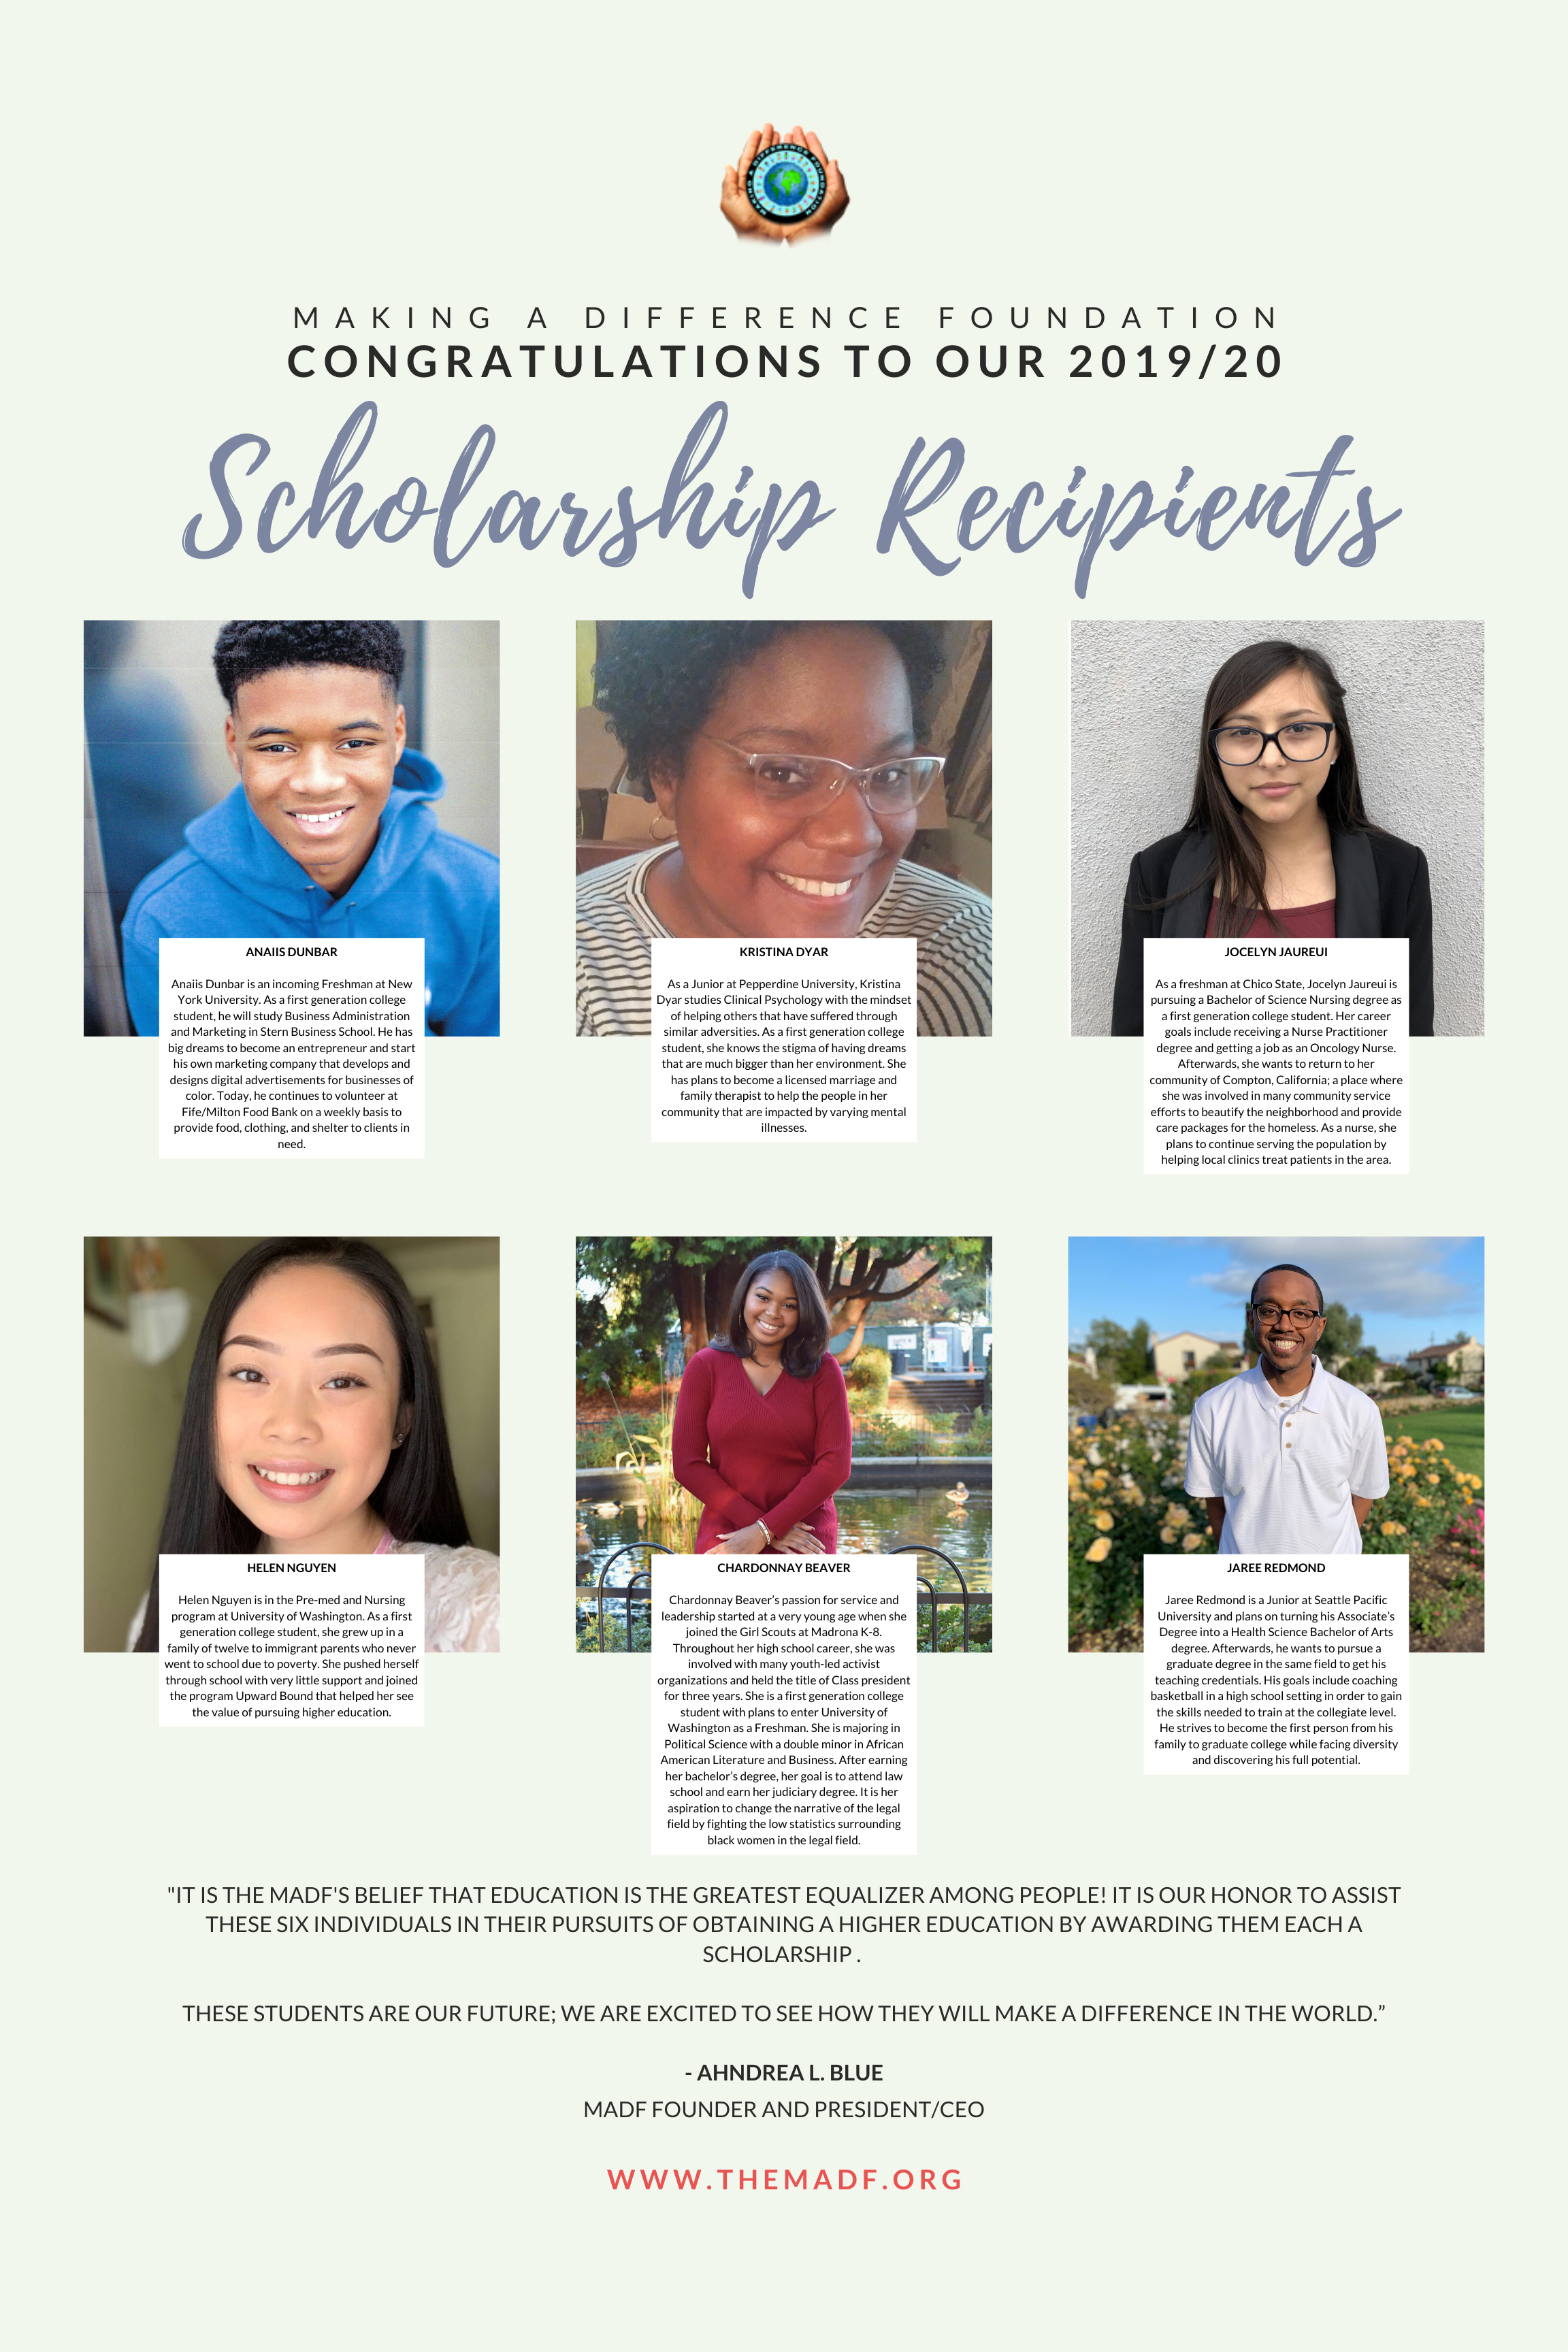 College Scholarships - The Making a Difference Foundation